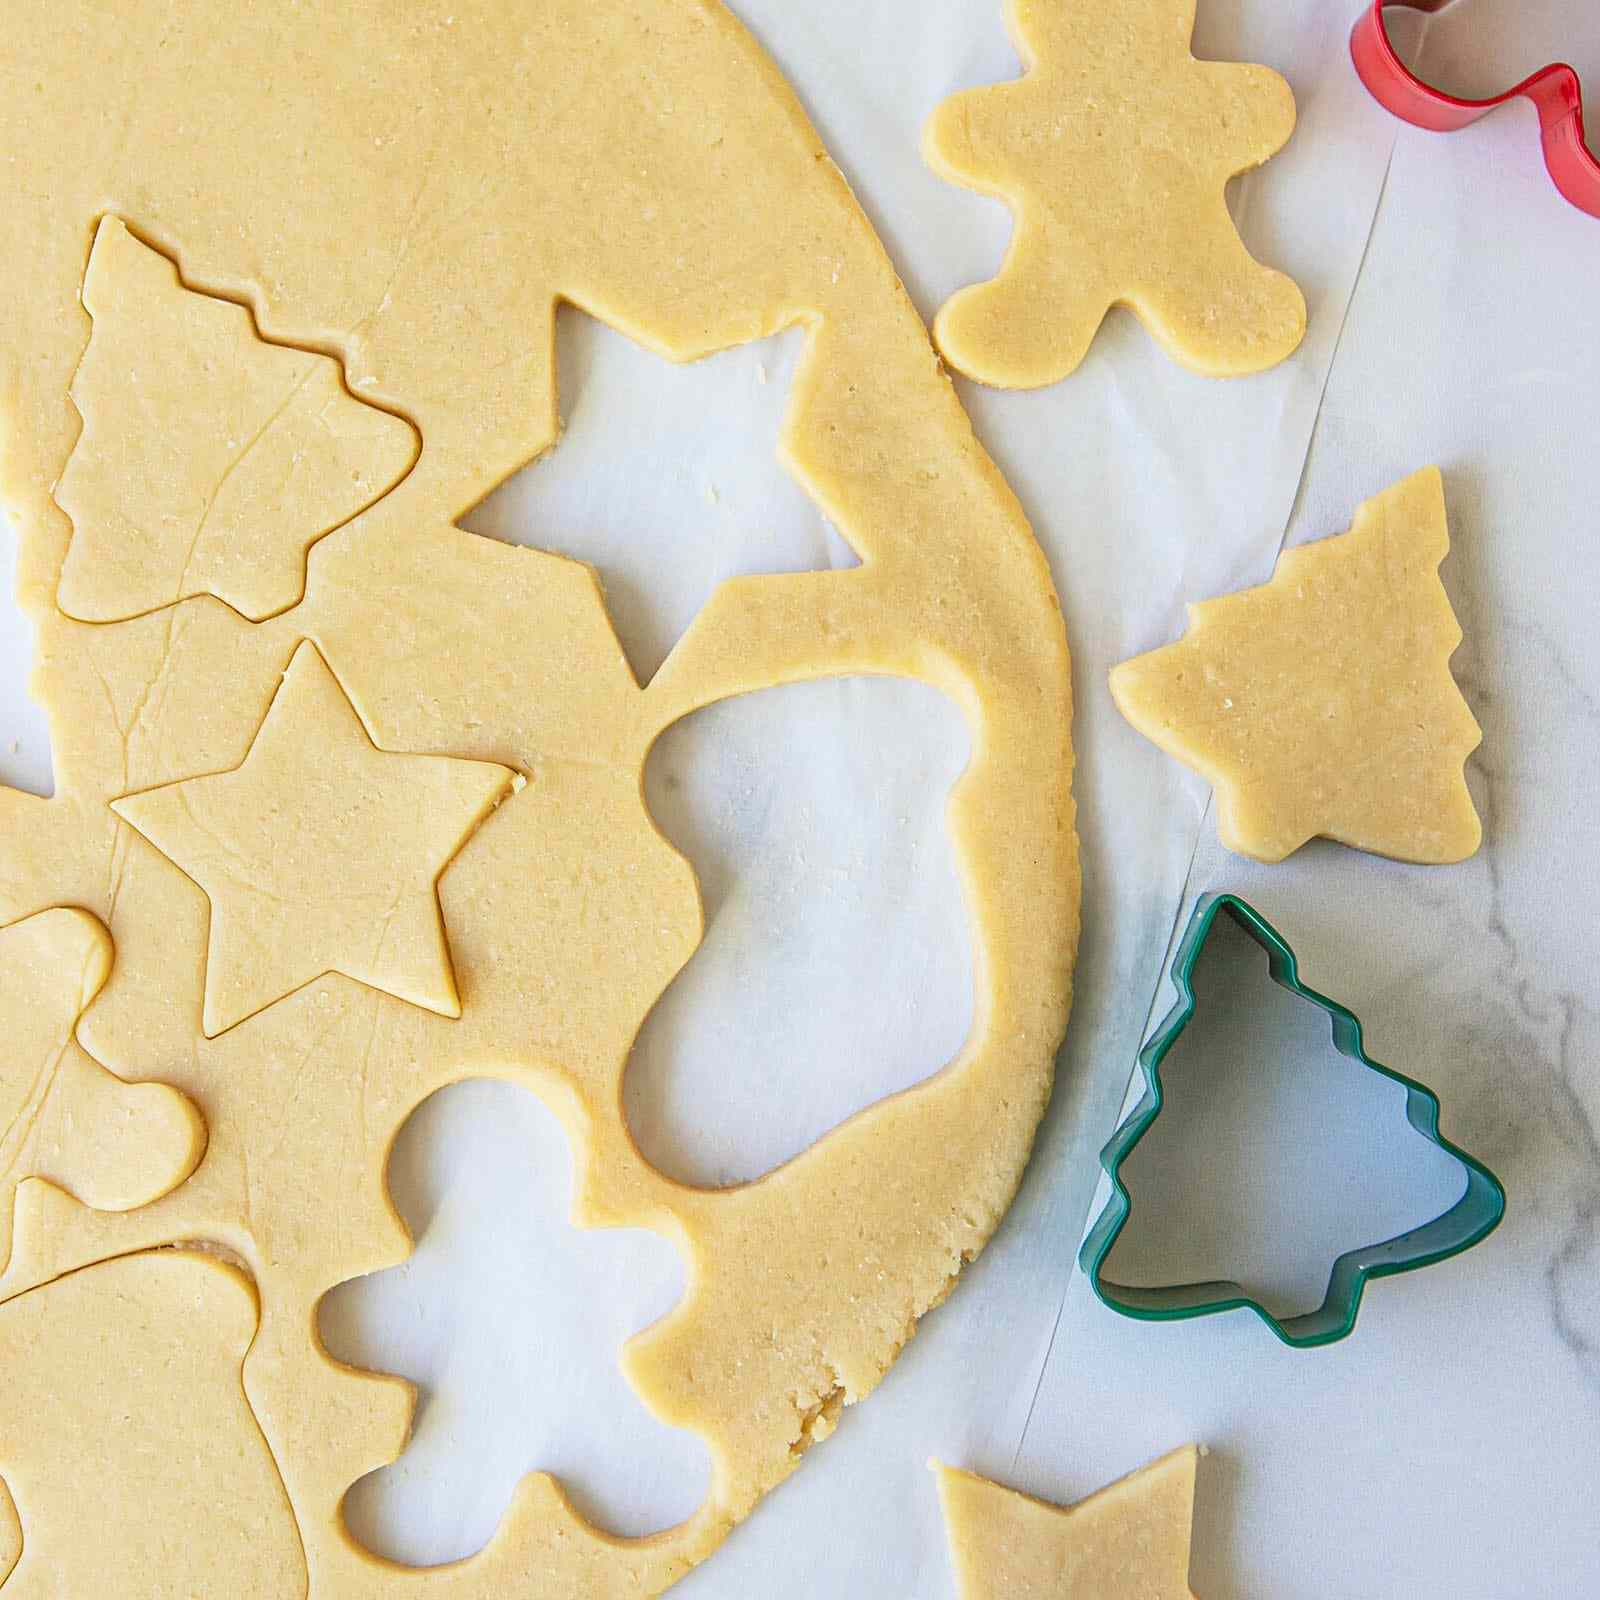 holiday cookies being cut out using a cookie cutter